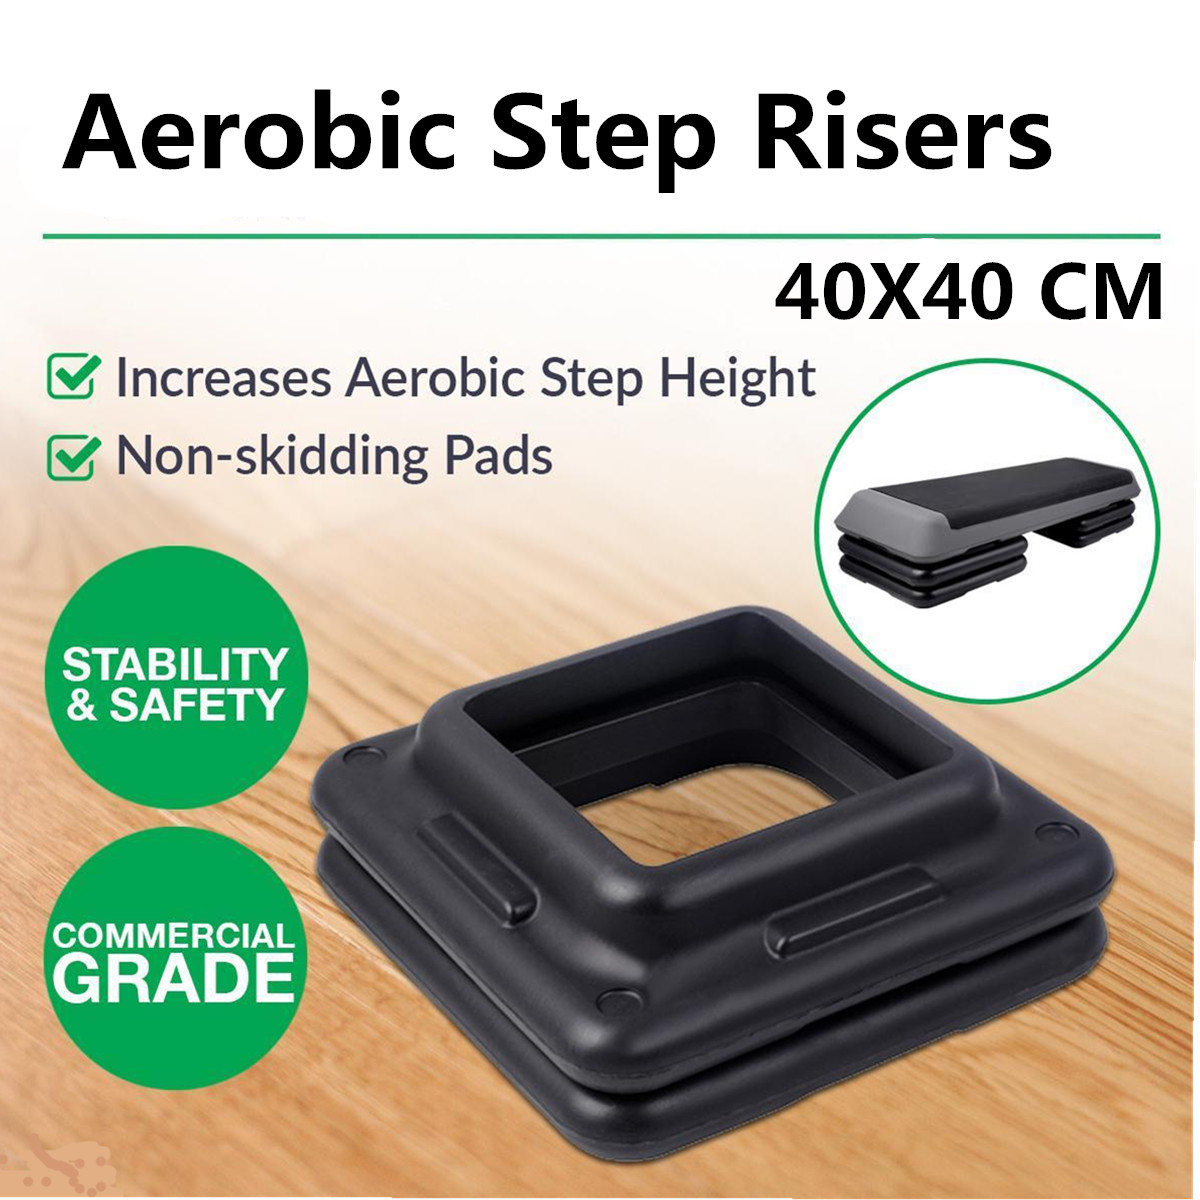 40x40cm Black Aerobic Step Risers Gym Fitness Stepper Workout Exercise Pad Pedal Increase Base Tray Fitness Equipment Accessory